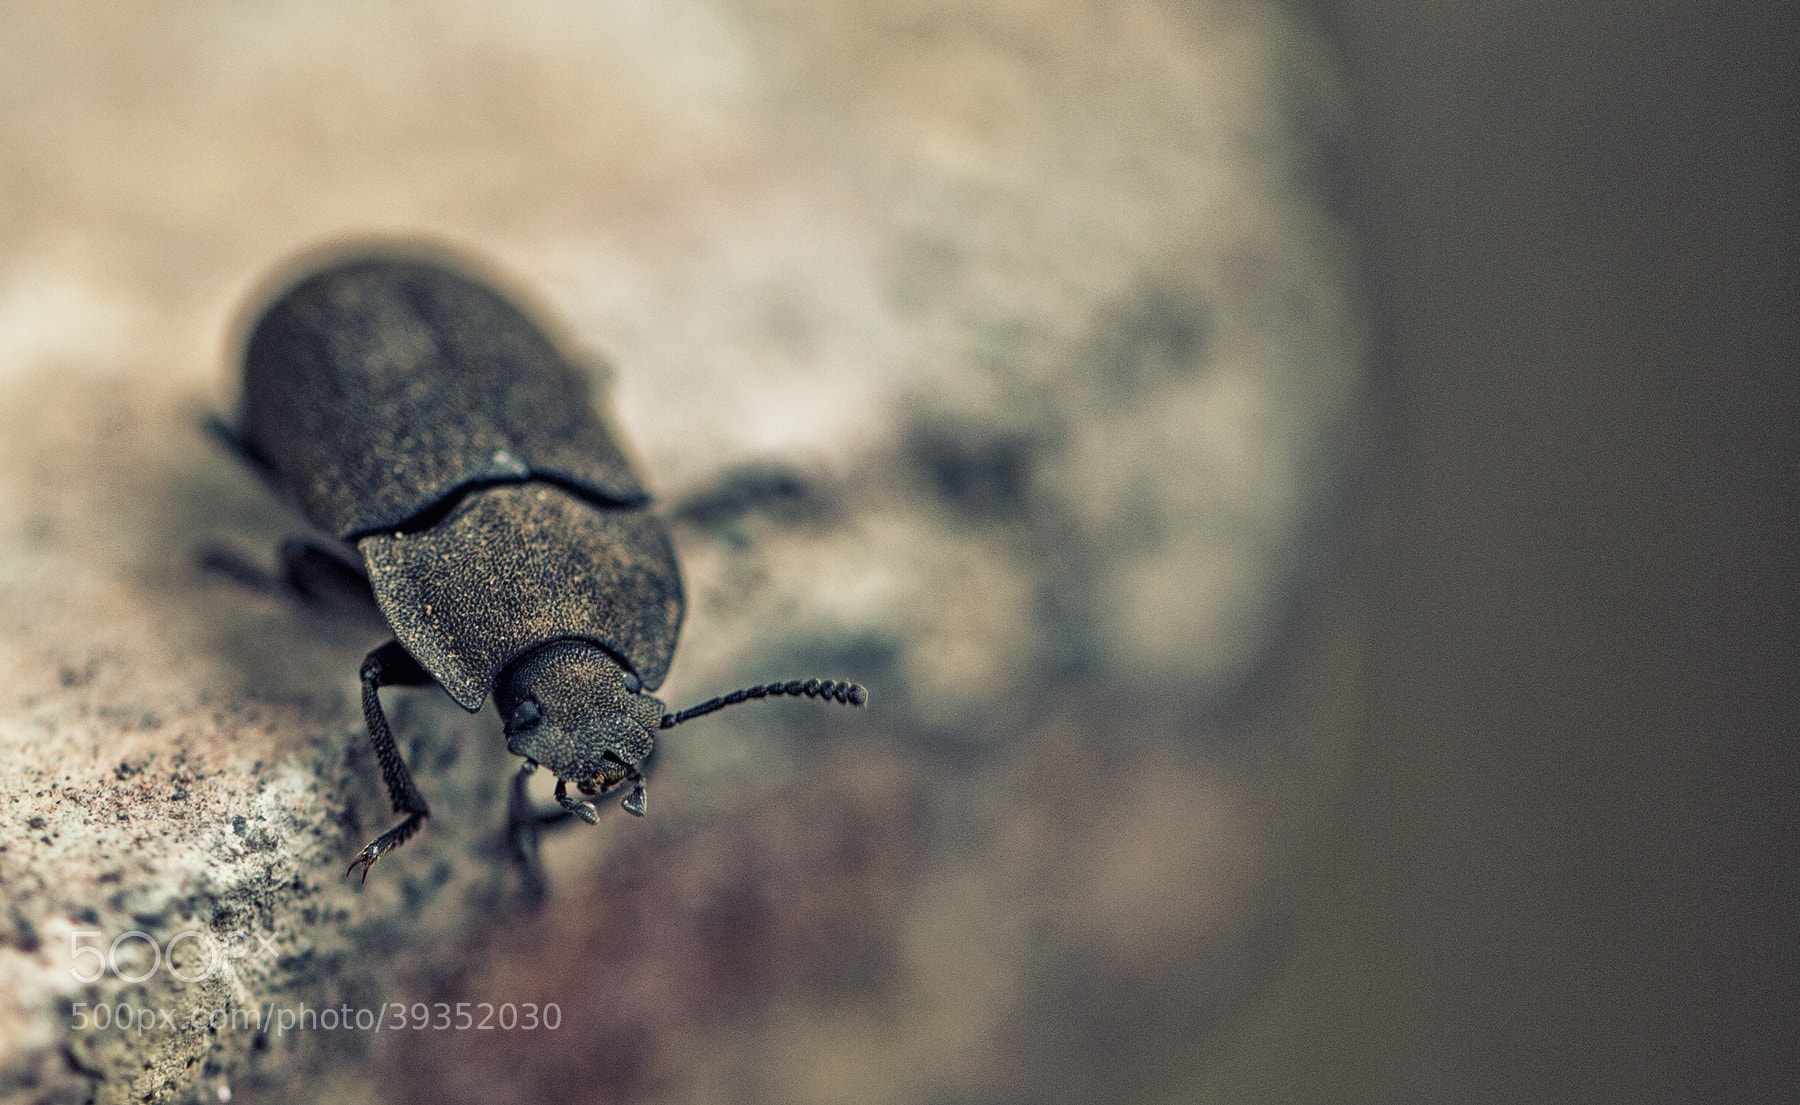 Photograph Beetle by Dilip Singh on 500px